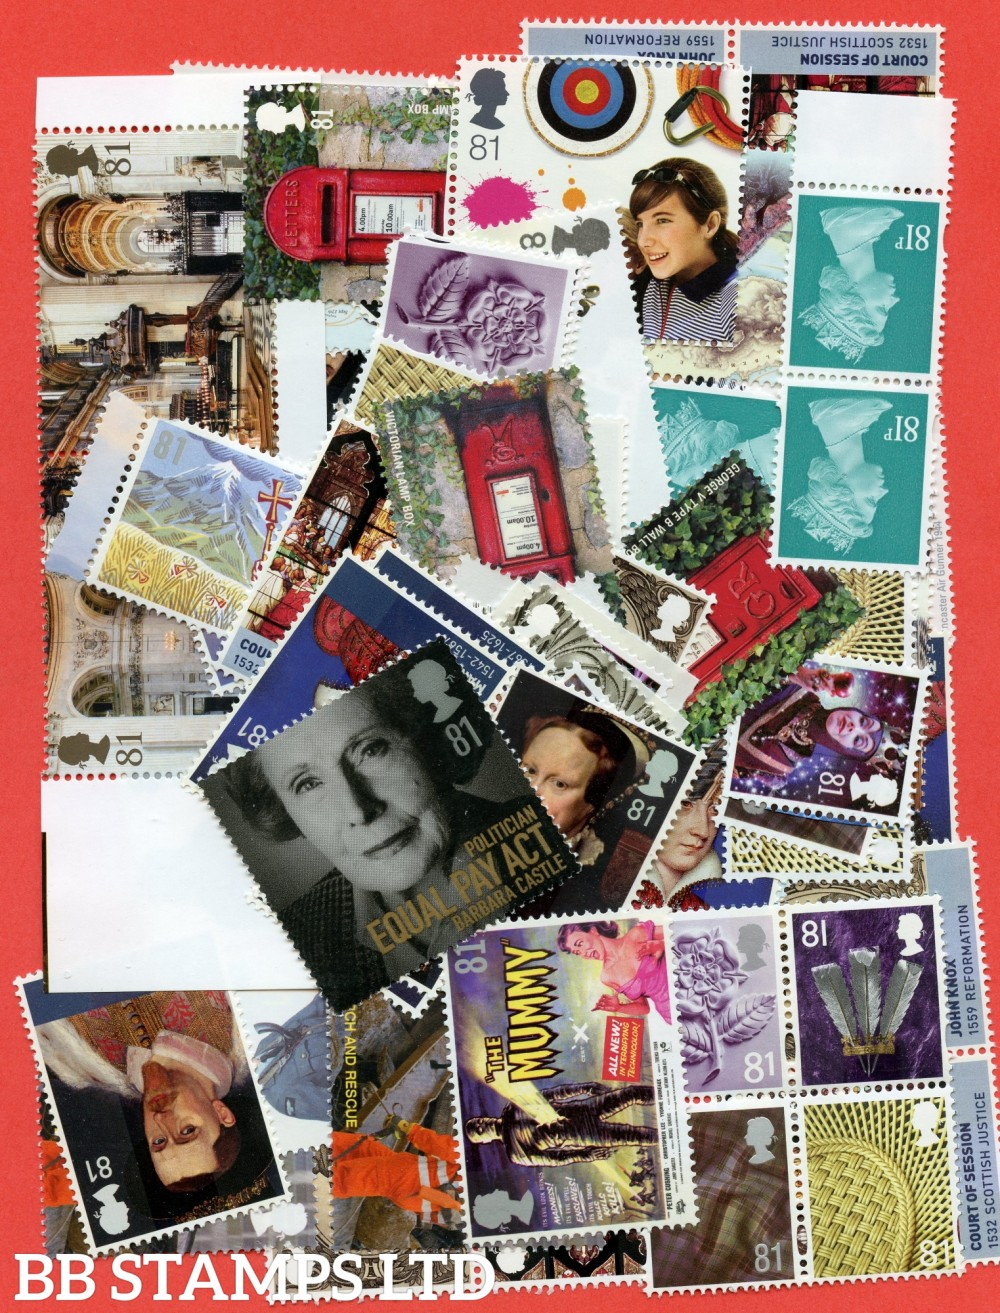 100 x 81p stamps. All of our postage lots are genuine mint stamps with gum and have never been used as postage.